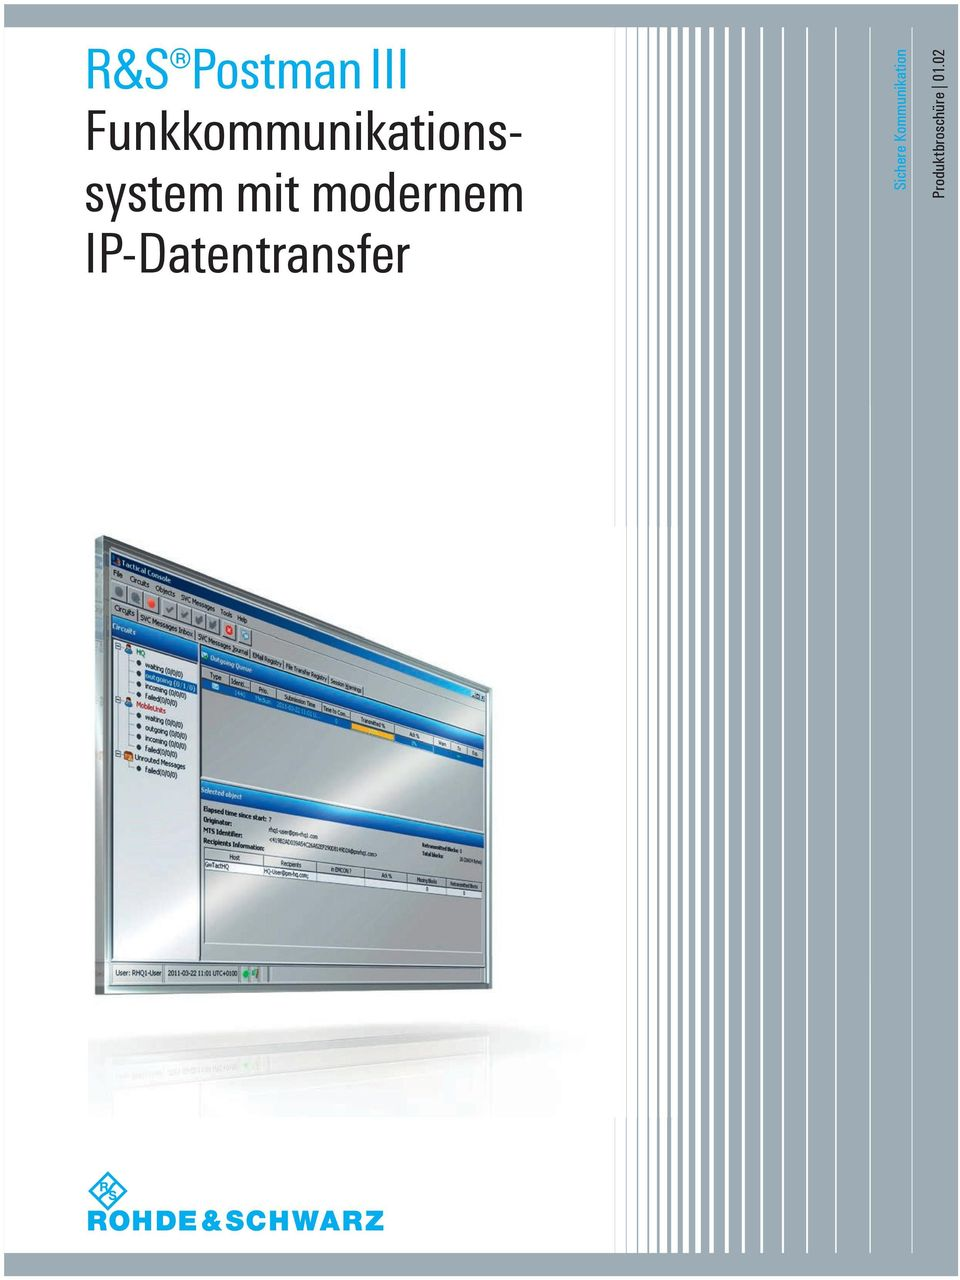 modernem IP-Datentransfer